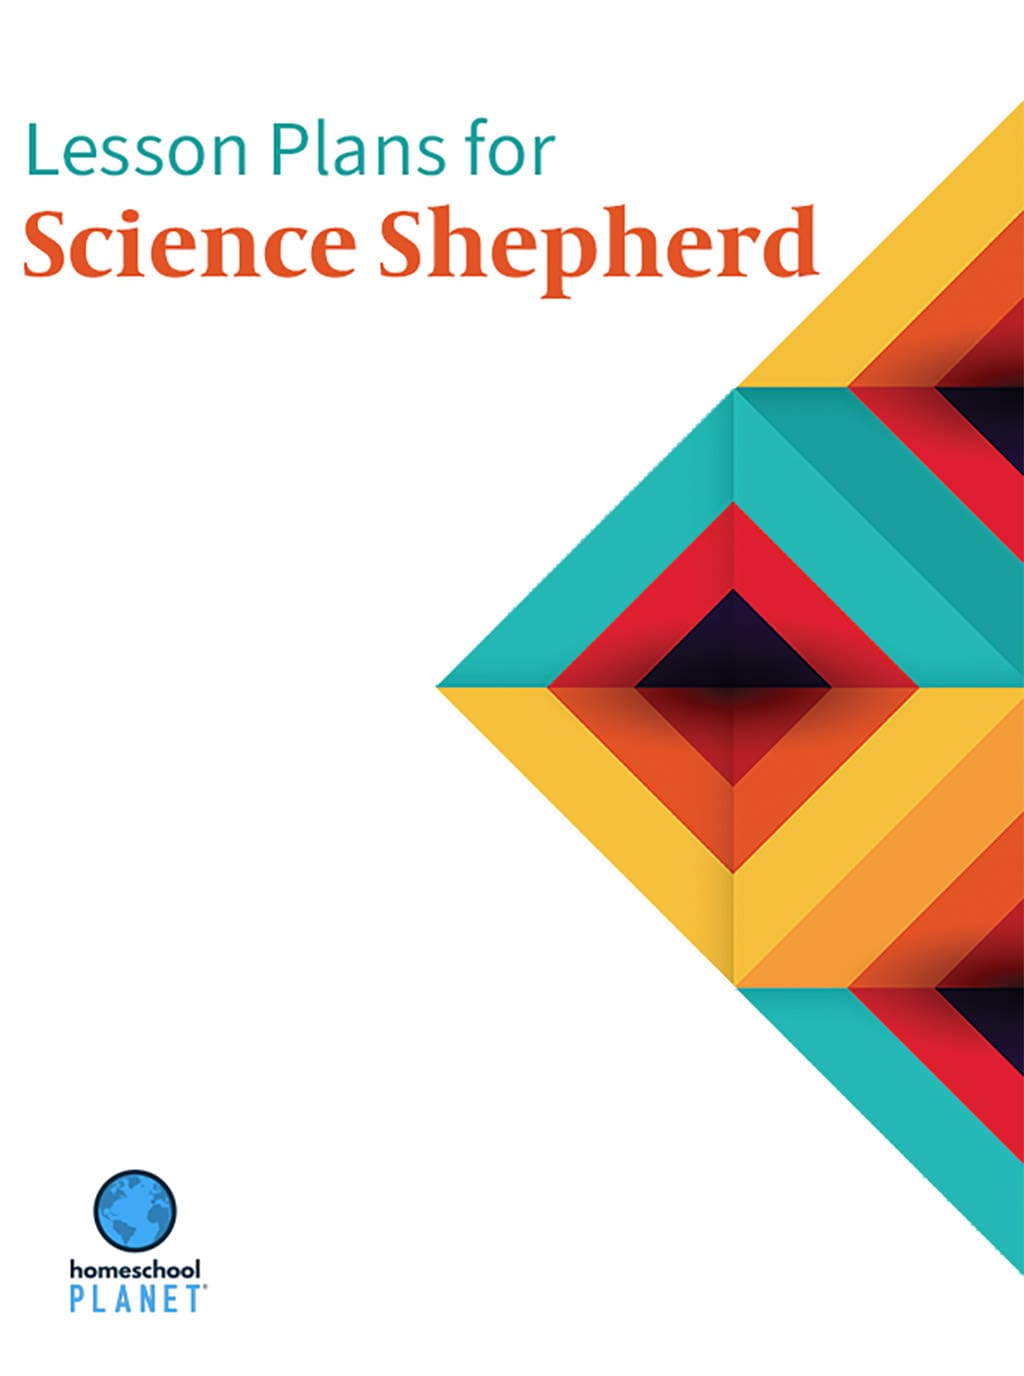 Science Shepherd Homeschool Planet Biology lesson plan cover